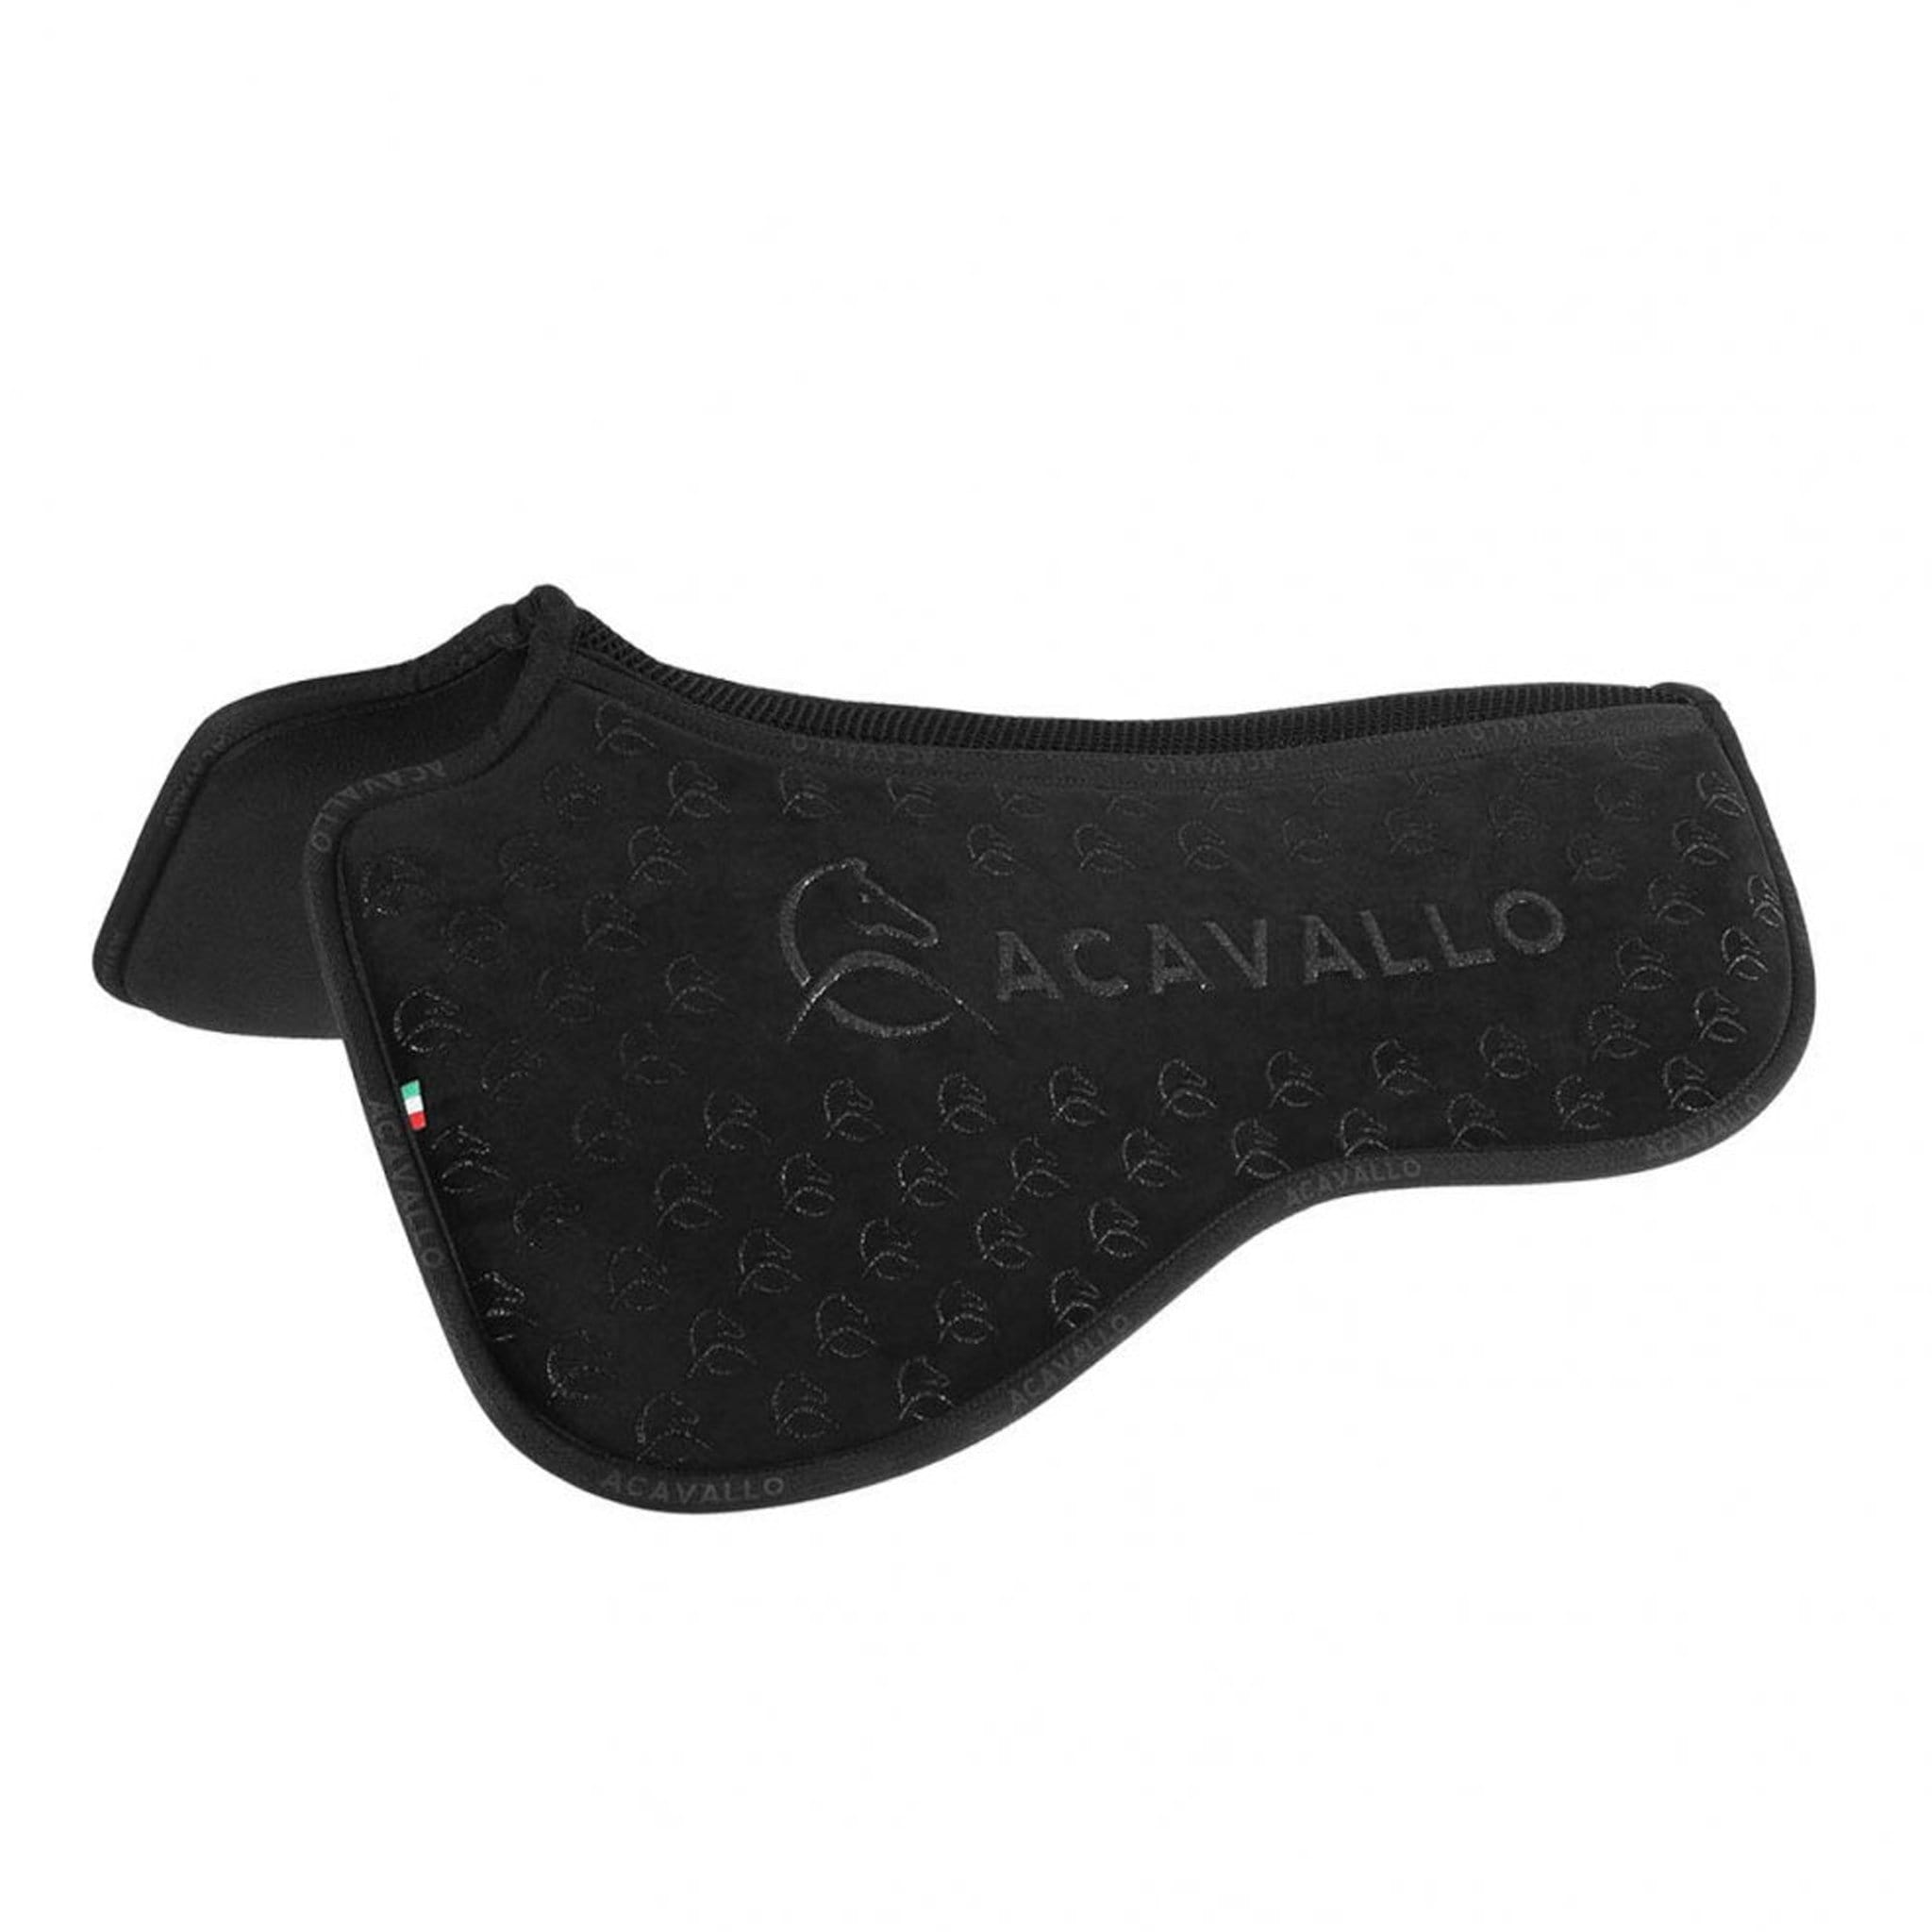 Acavallo Louvre Spine Free Silicone Memory Dressage Half Pad Black 4243